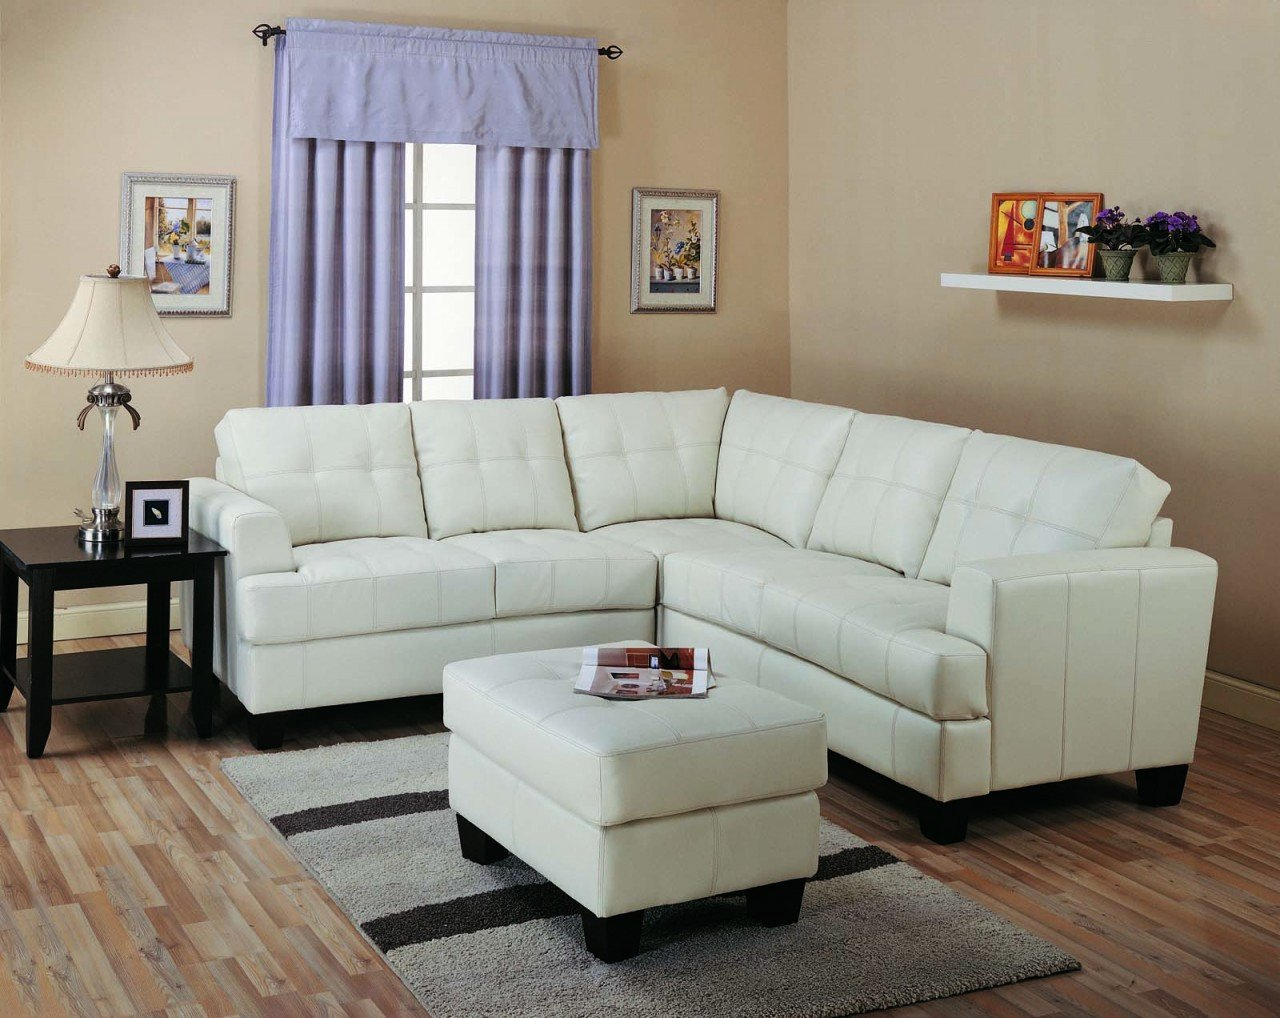 Small Living Room Ideaswith Sectionals Best Of Types Of Best Small Sectional Couches for Small Living Rooms